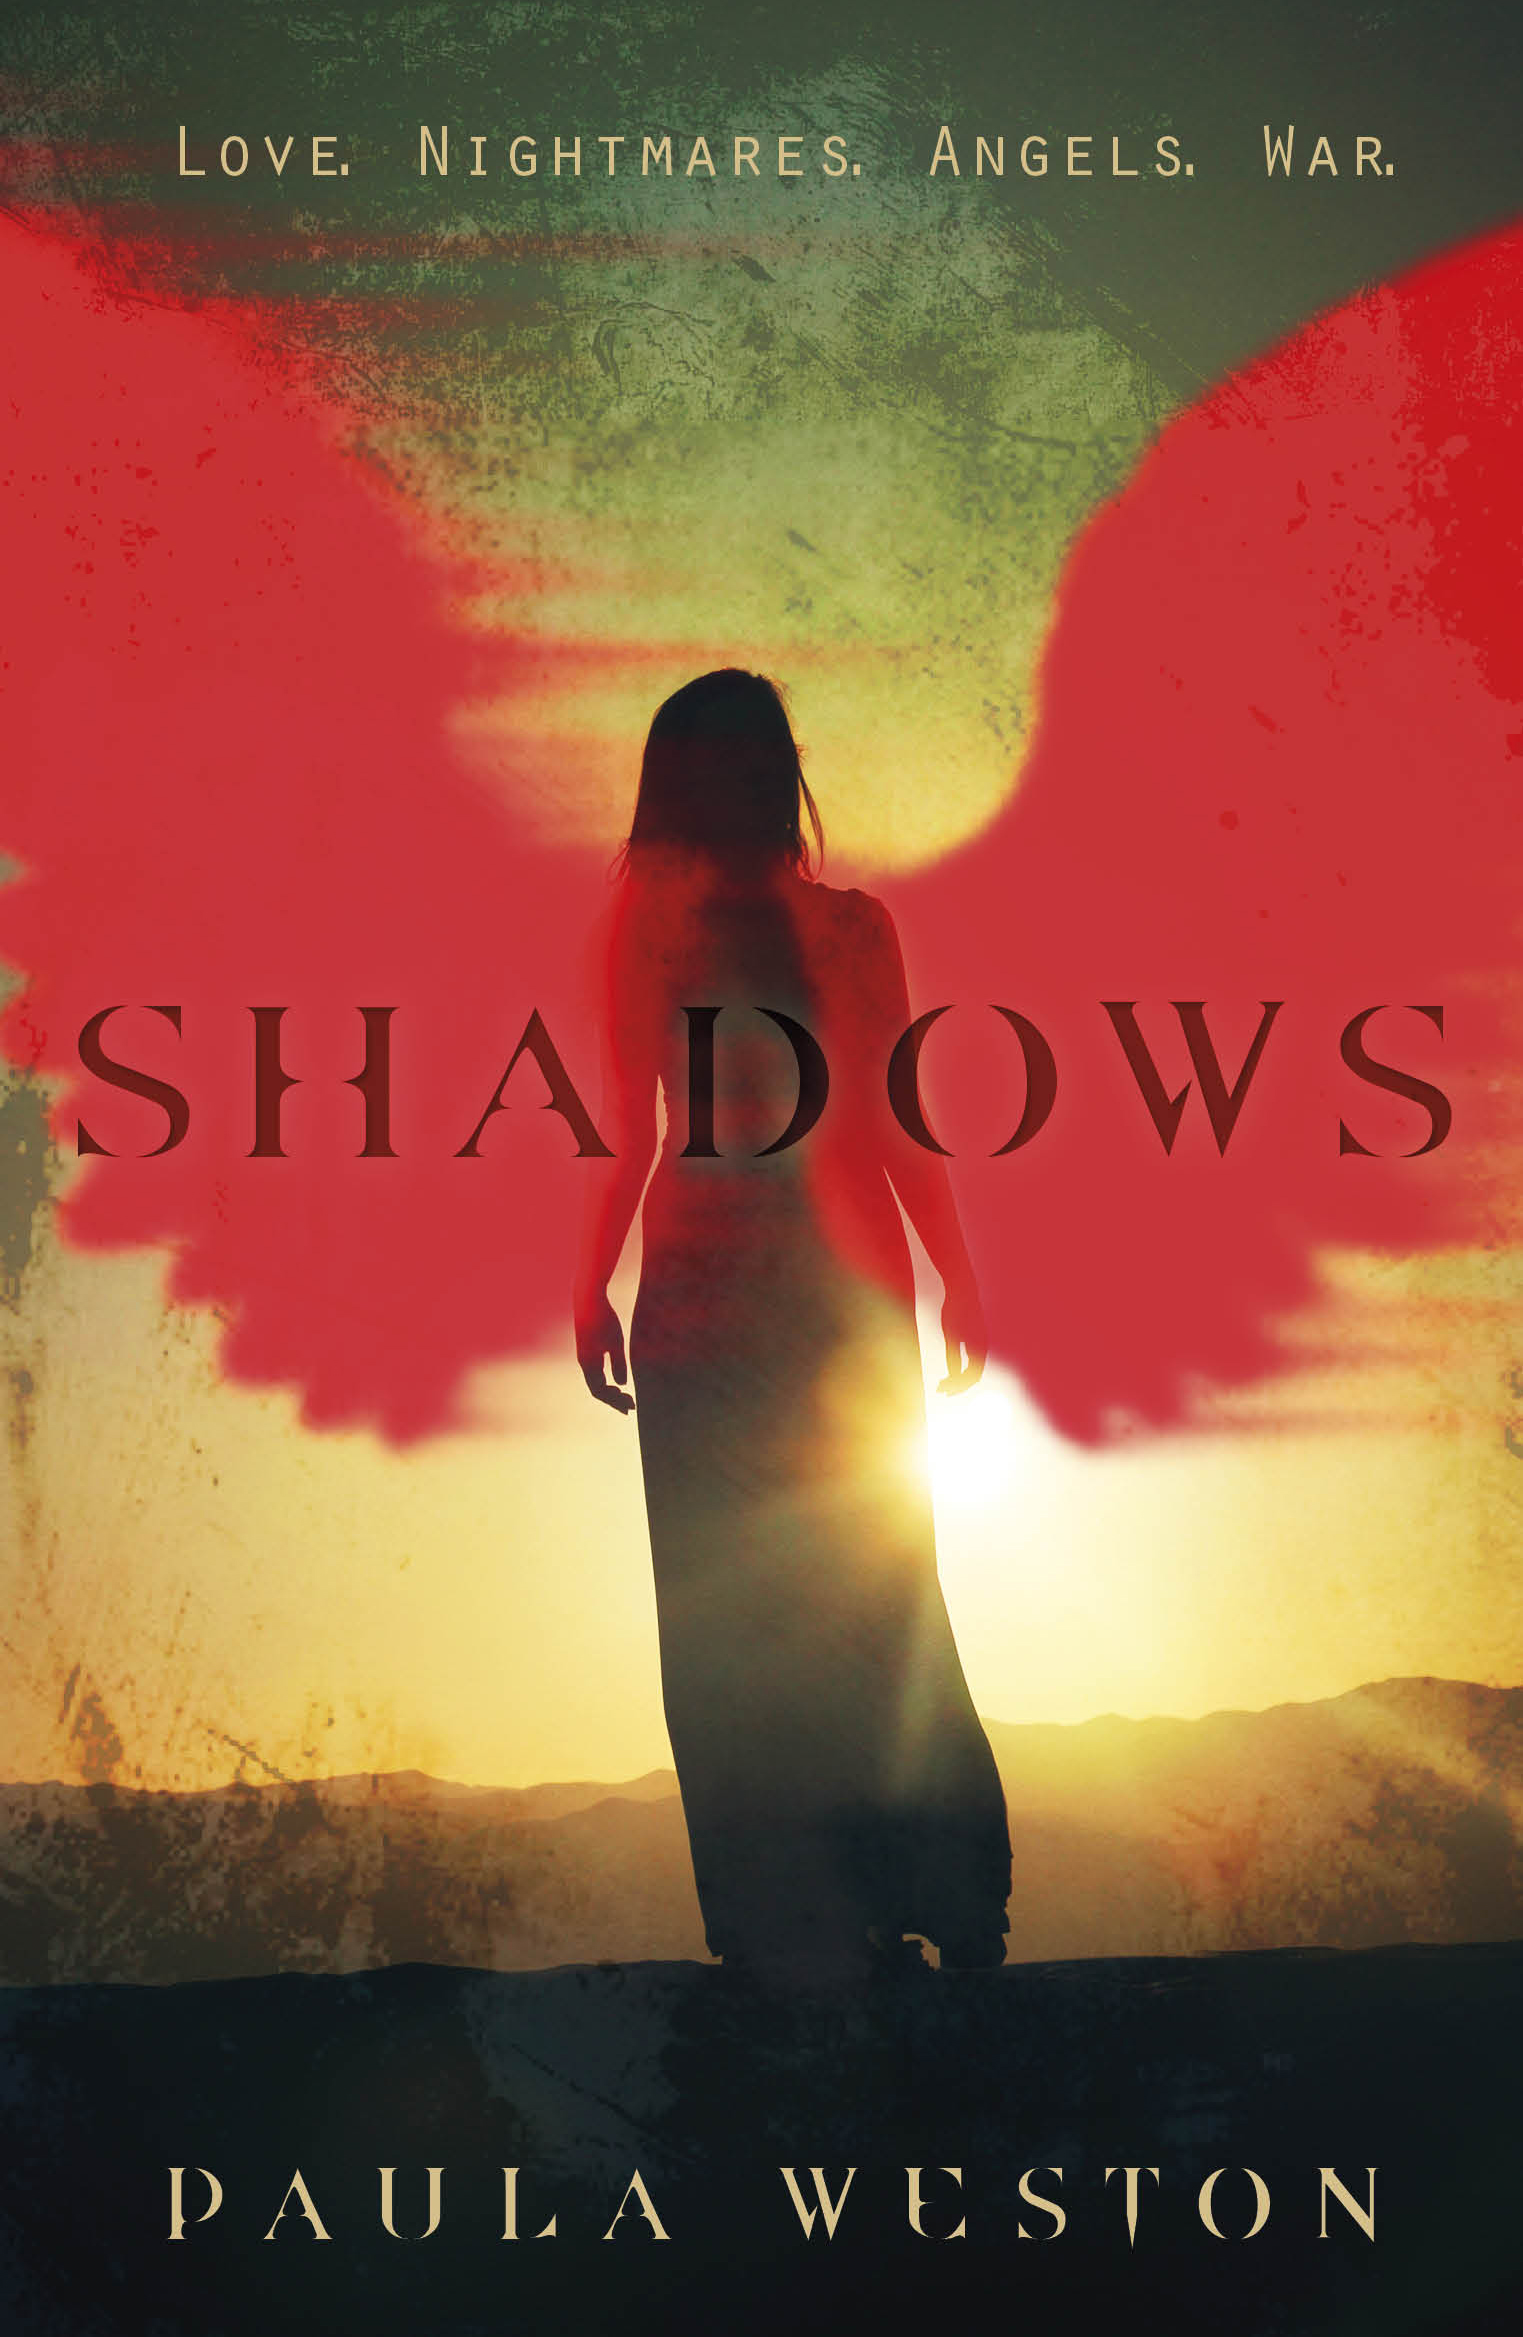 Shadows: review